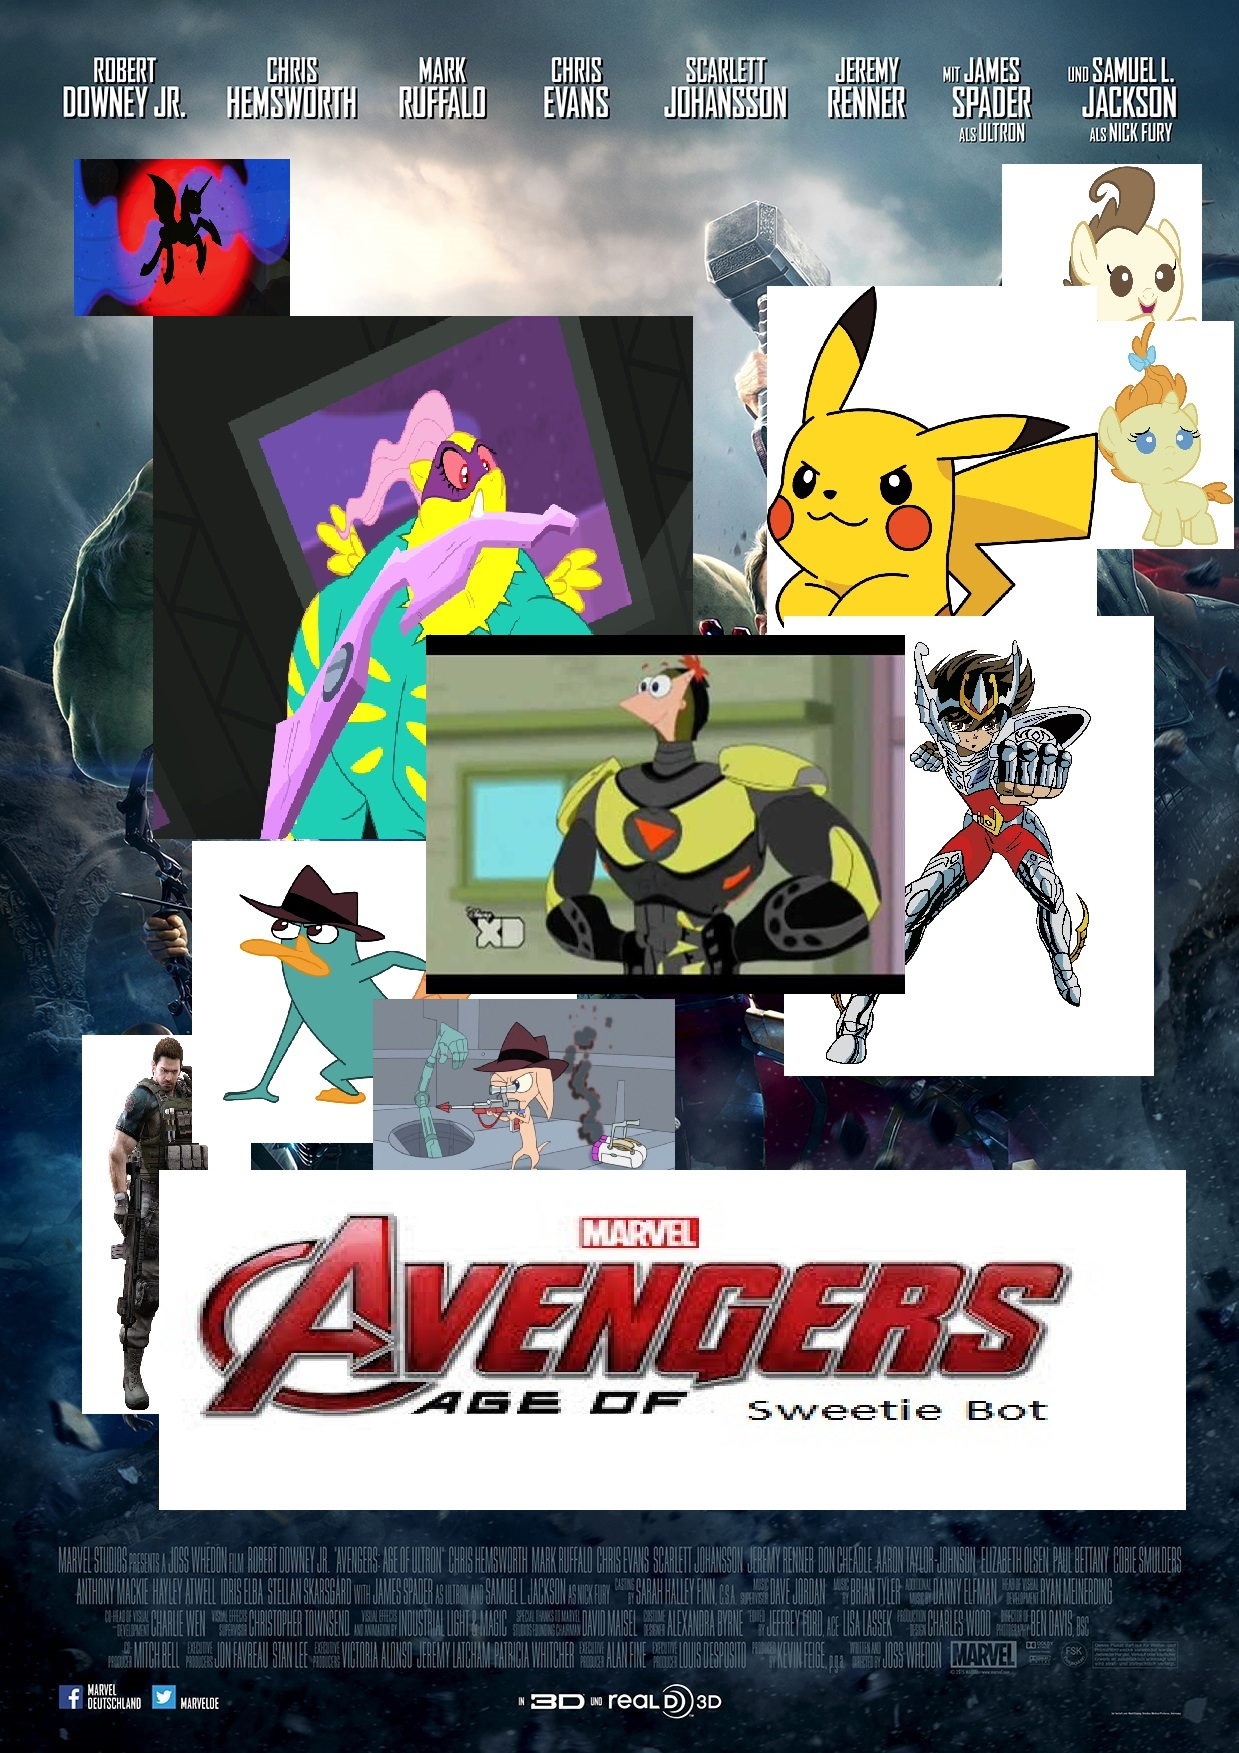 Avengers: Age of Sweetie Bot